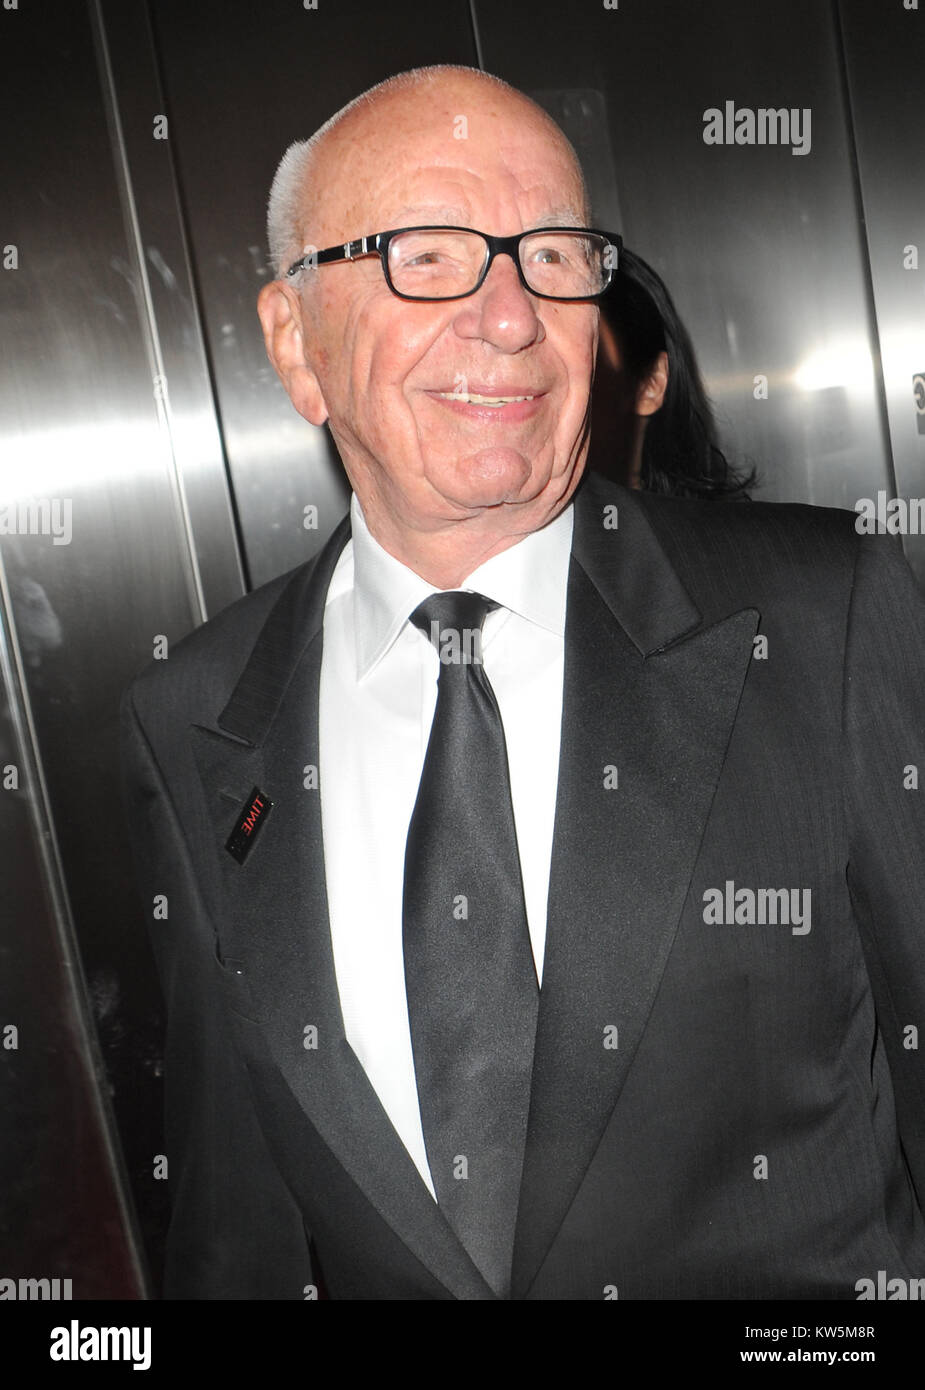 NEW YORK, NY - APRIL 29: Rupert Murdoch attends the TIME 100 Gala, TIME's 100 most influential people in the - Stock Image